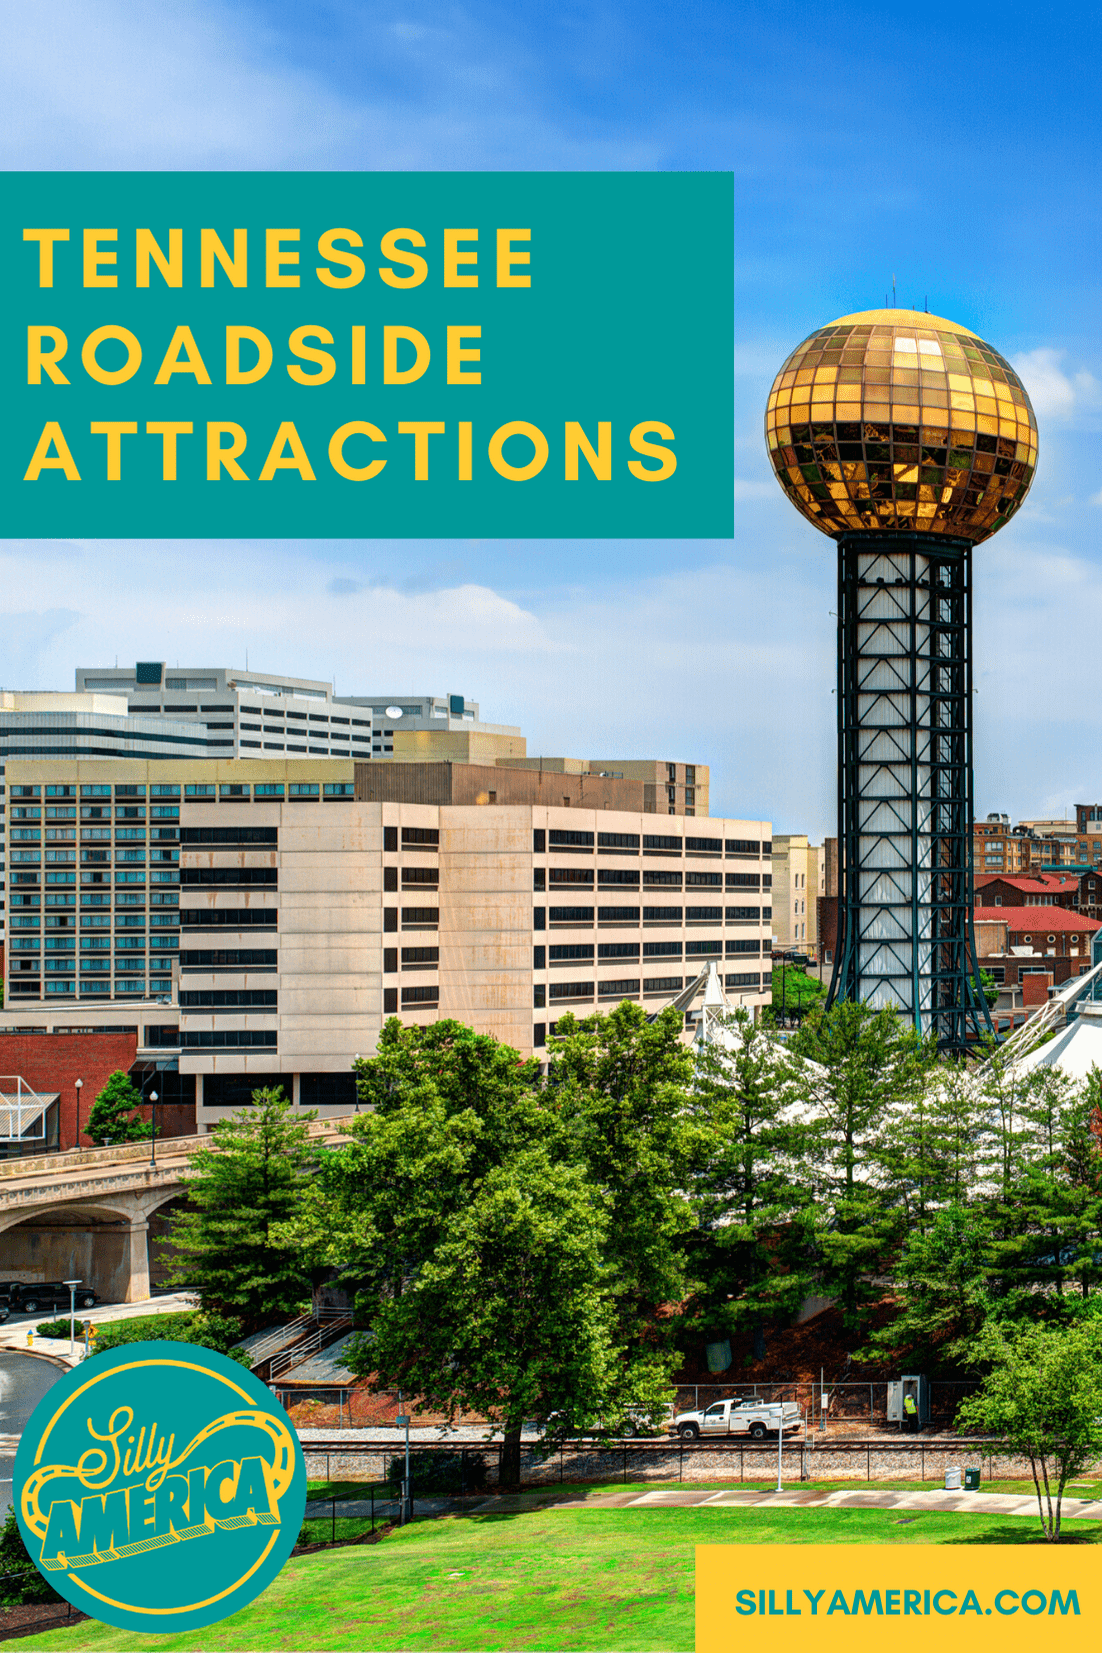 The best Tennessee roadside attractions to visit on a Tennessee road trip. Add these roadside oddities to your travel bucket list, itinerary, or route map! Weird roadside attractions and road trip stops for kids or adults. #TennesseeRoadsideAttractions #TennesseeRoadsideAttraction #RoadsideAttractions #RoadsideAttraction #RoadTrip #TennesseeRoadTrip #TennesseeRoadTripMap #TennesseeRoadTripBucketLists #TennesseeBucketList #ThingsToDoInTennessee #TennesseeRoadTripWithKids #TennesseeRoadTripIdeas